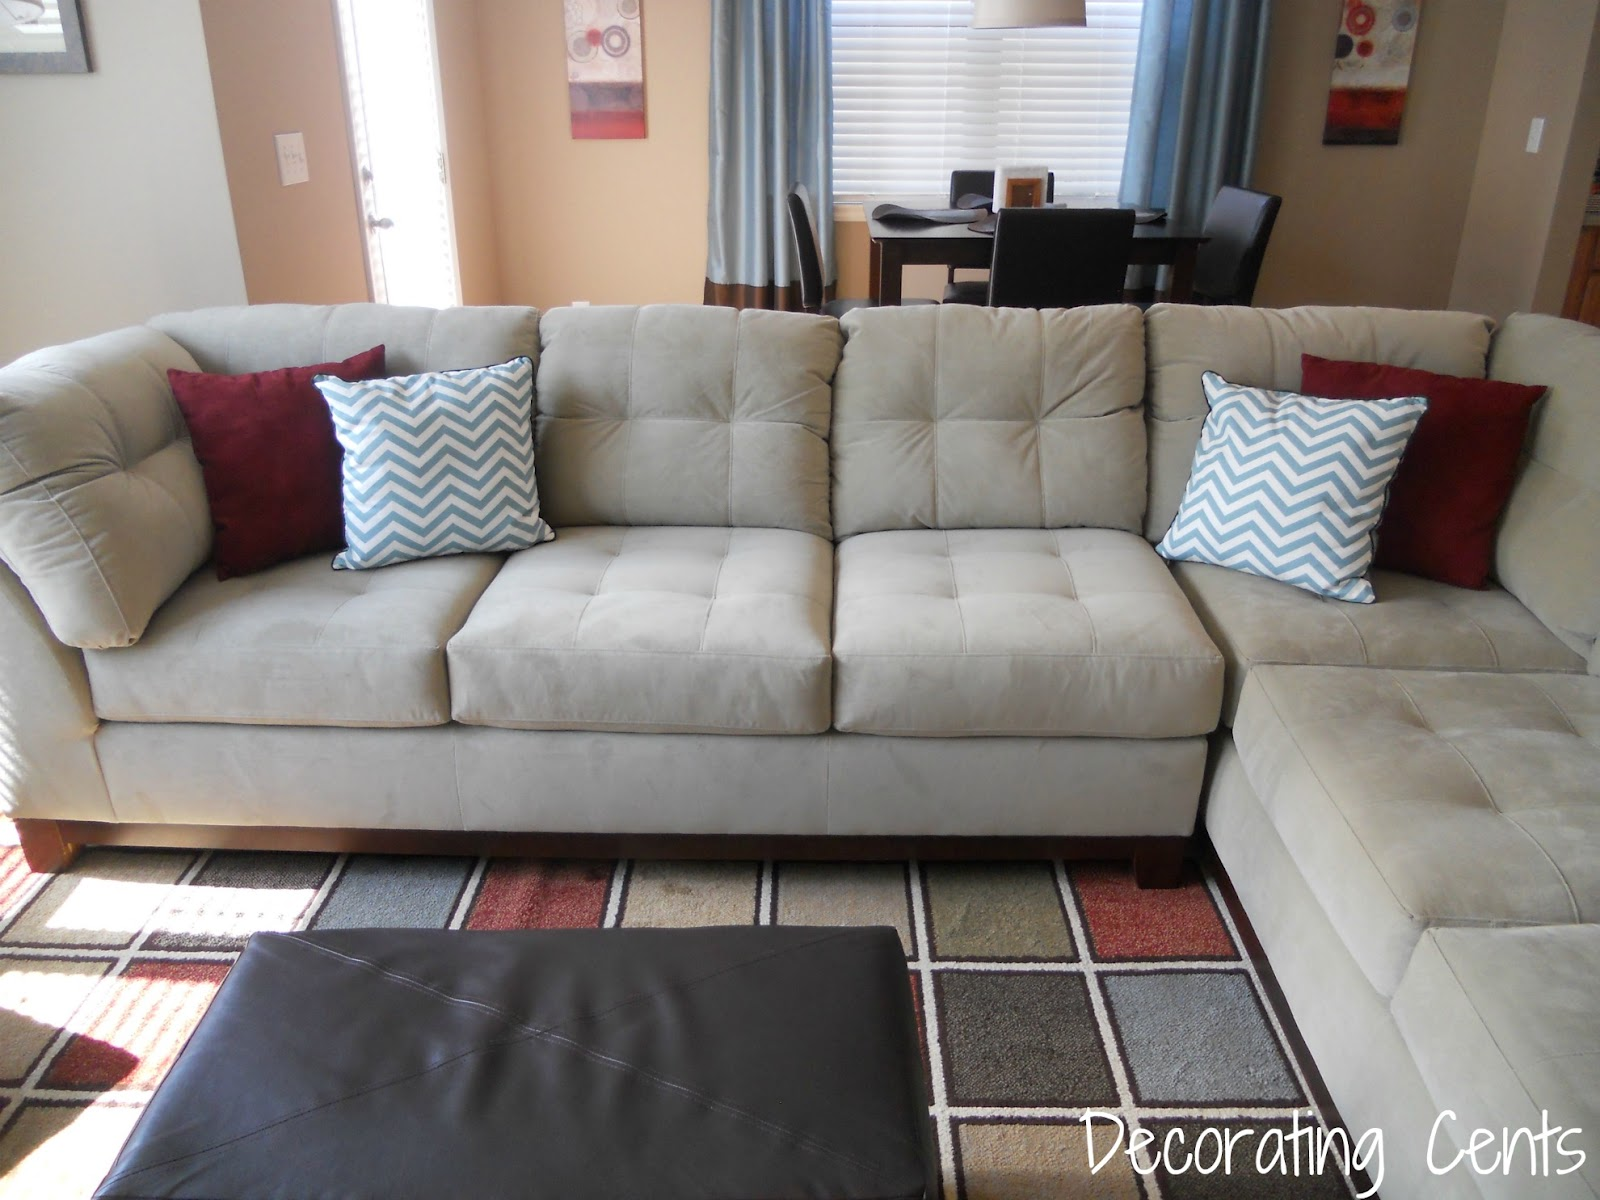 Decorating Cents: The New Family Room